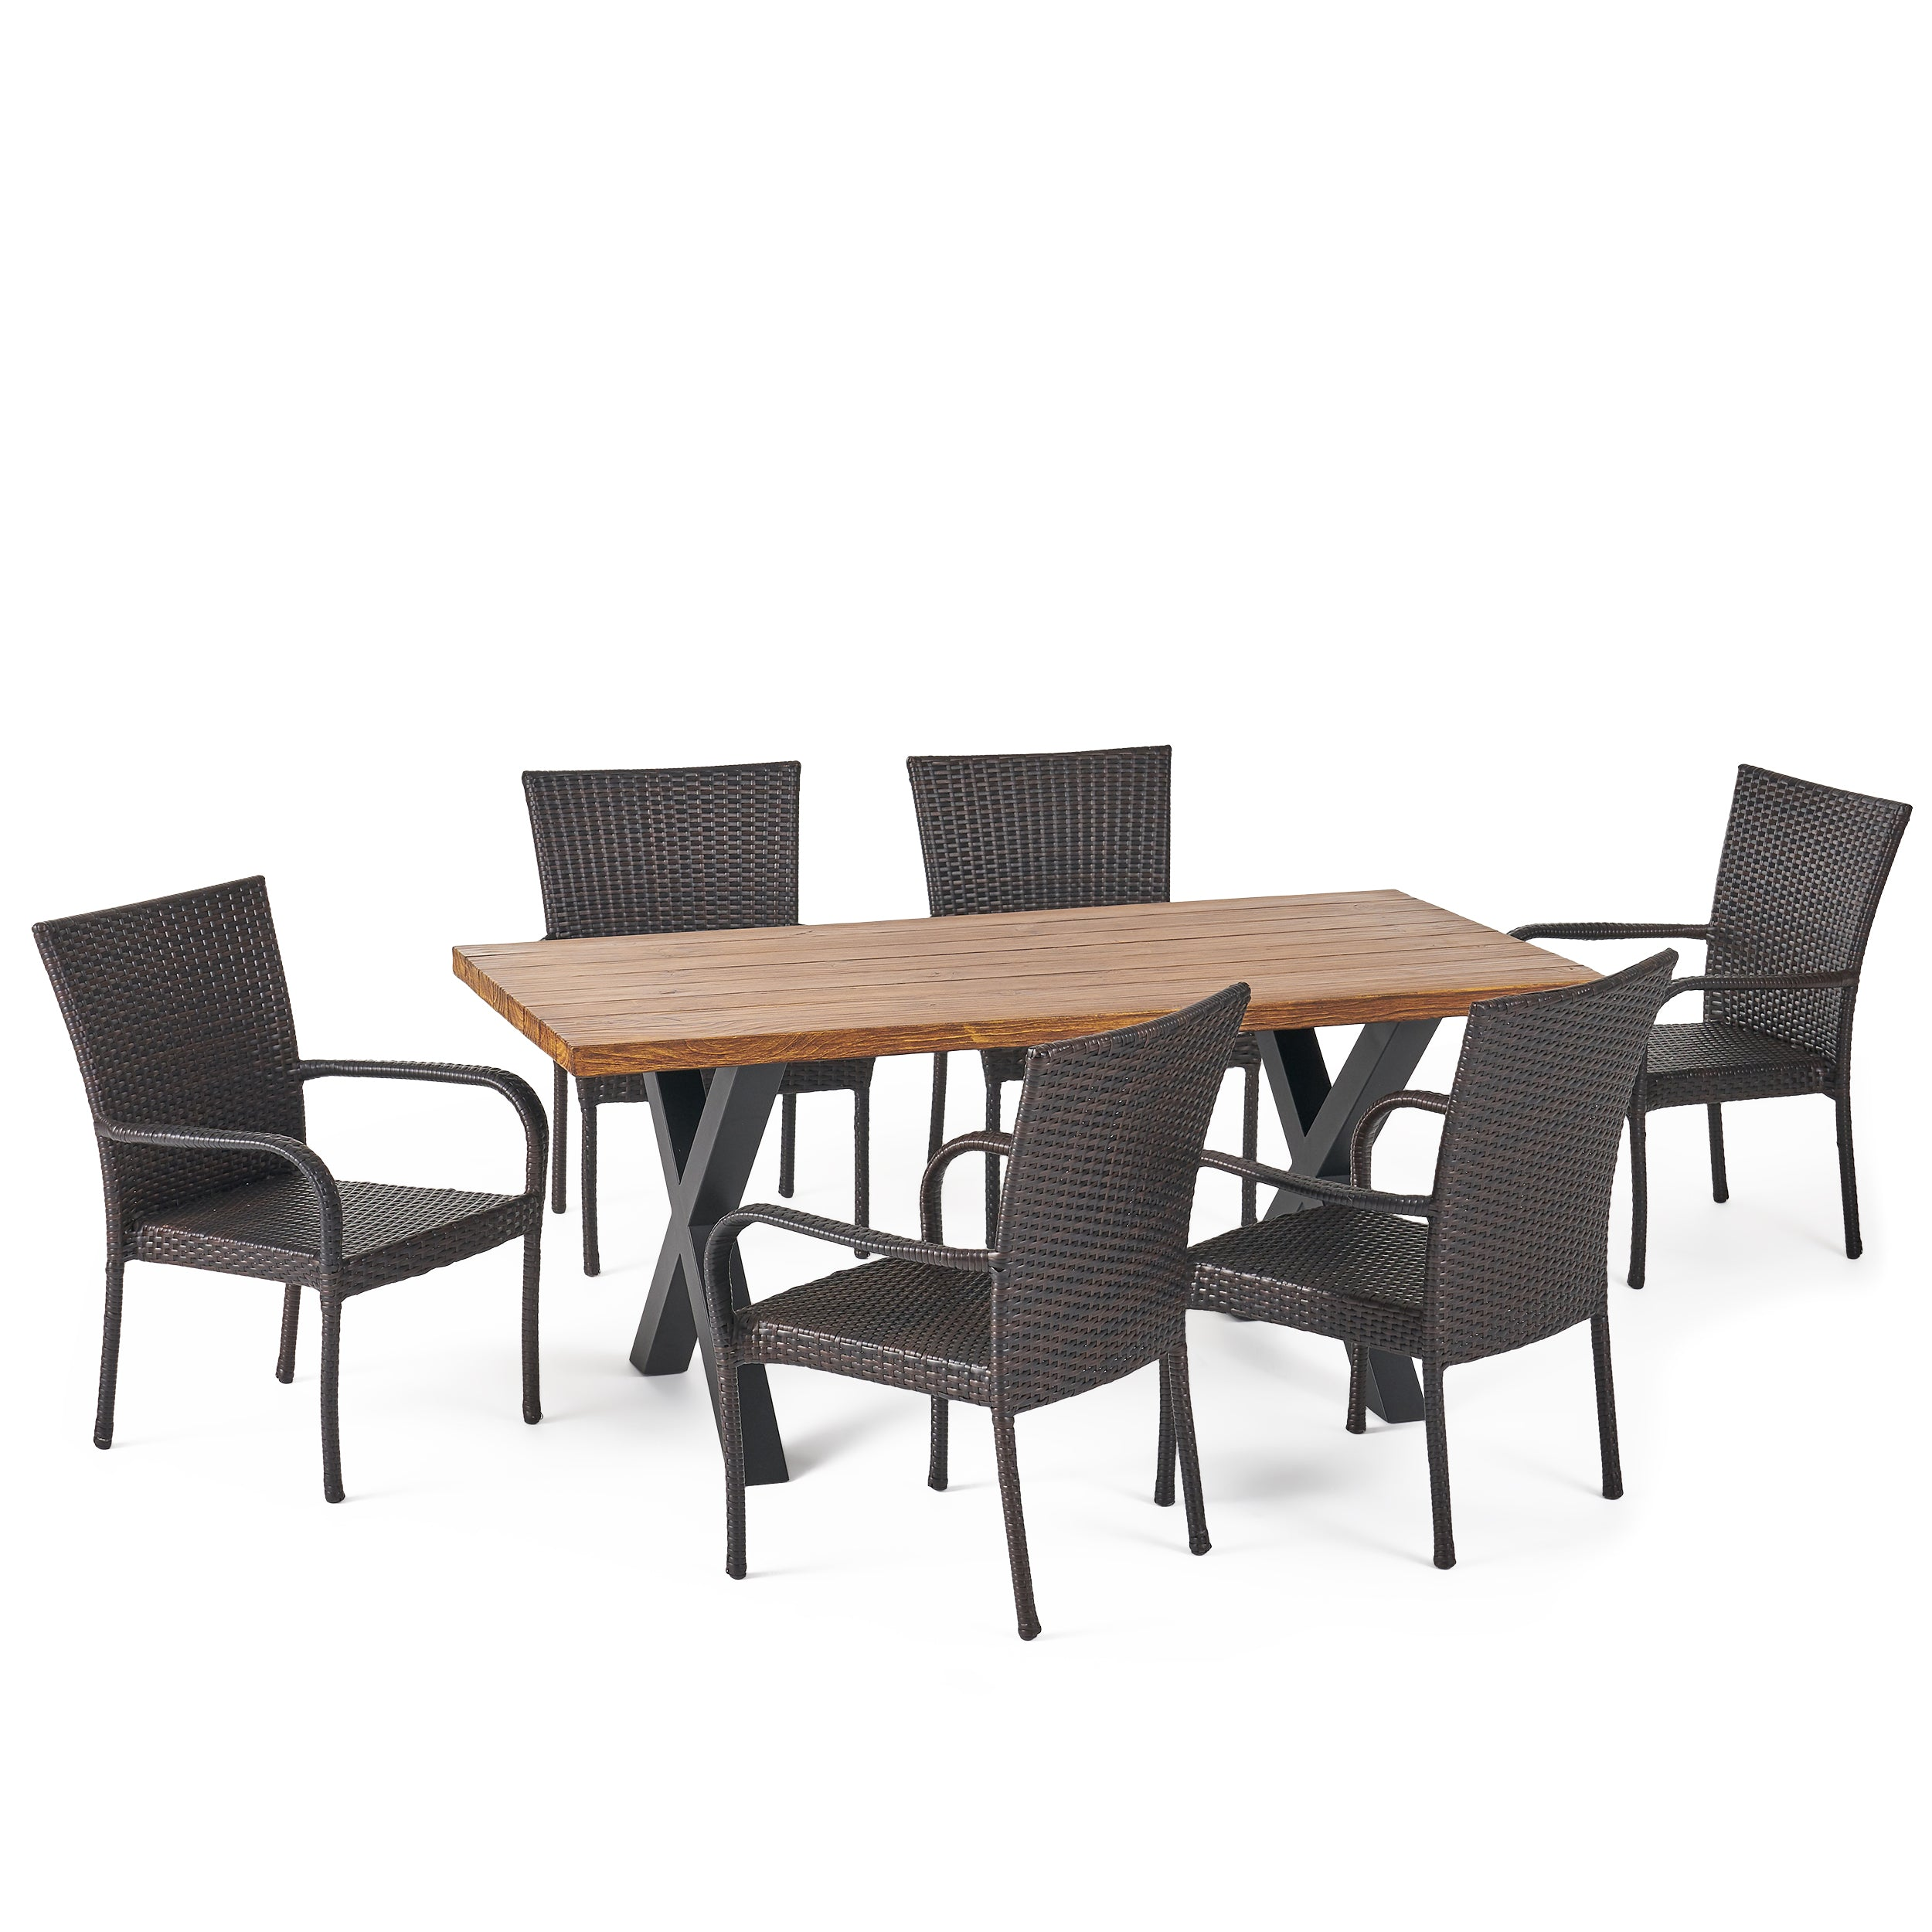 Amaryllis Outdoor 7 Piece Wicker Dining Set with Light Weight Concrete Table Default Title